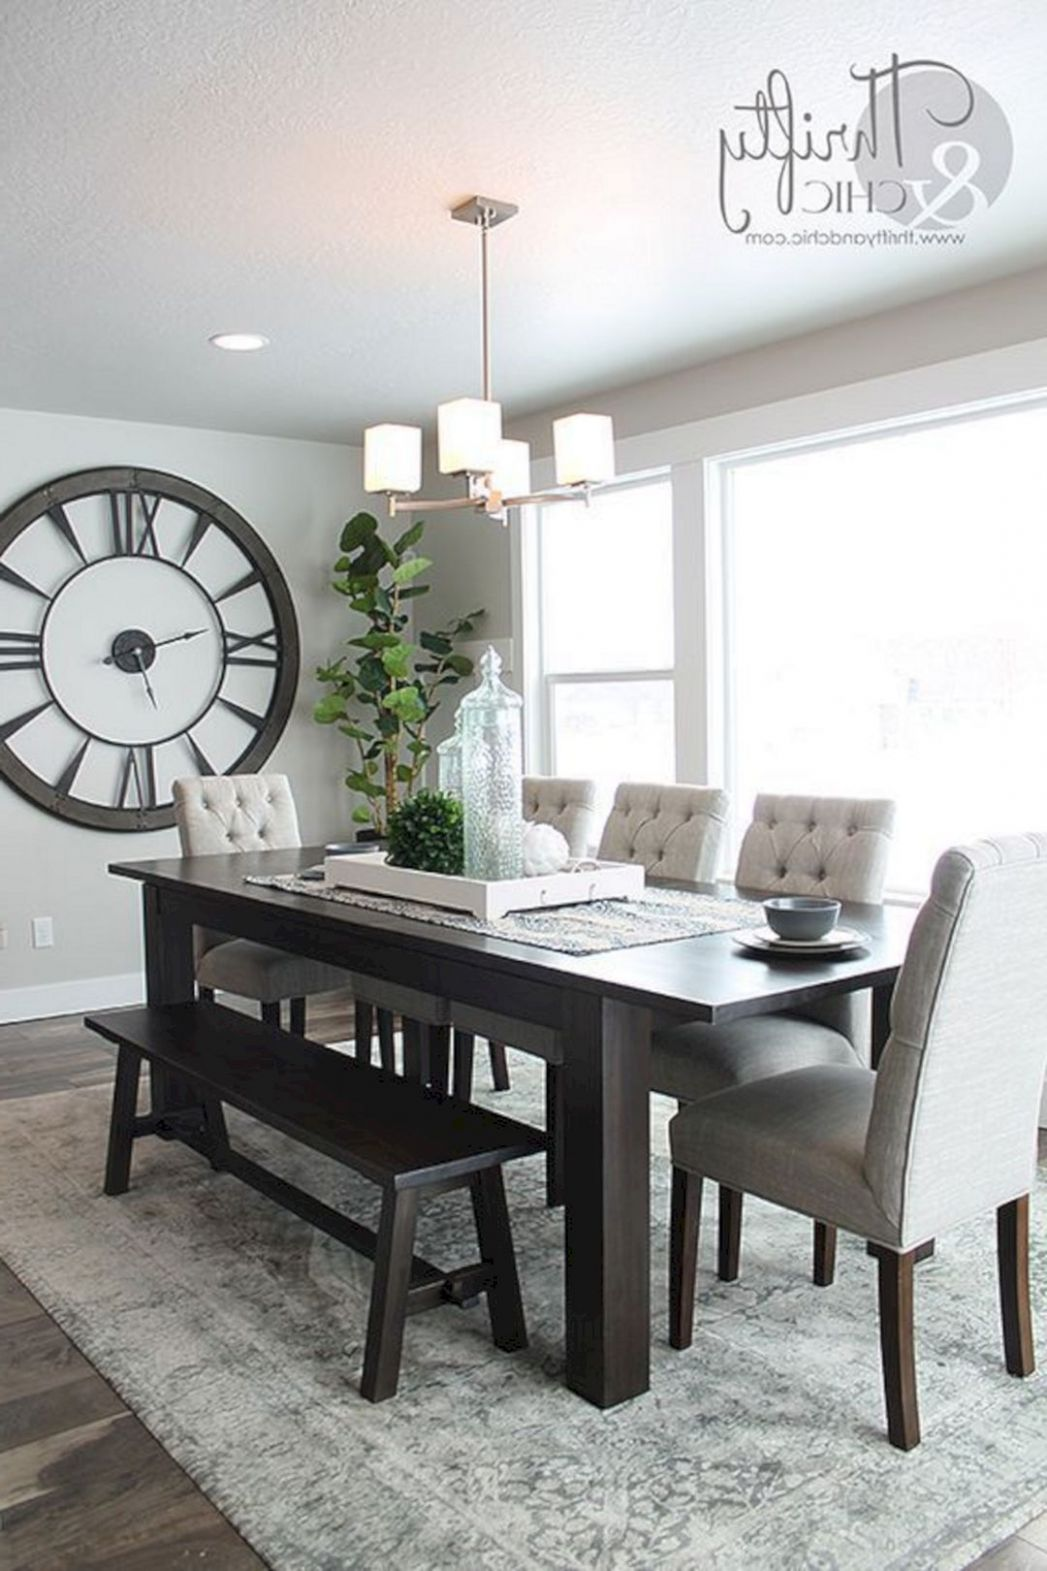 12 Simple and Minimalist Dining Table Decor Ideas | Dining room ...